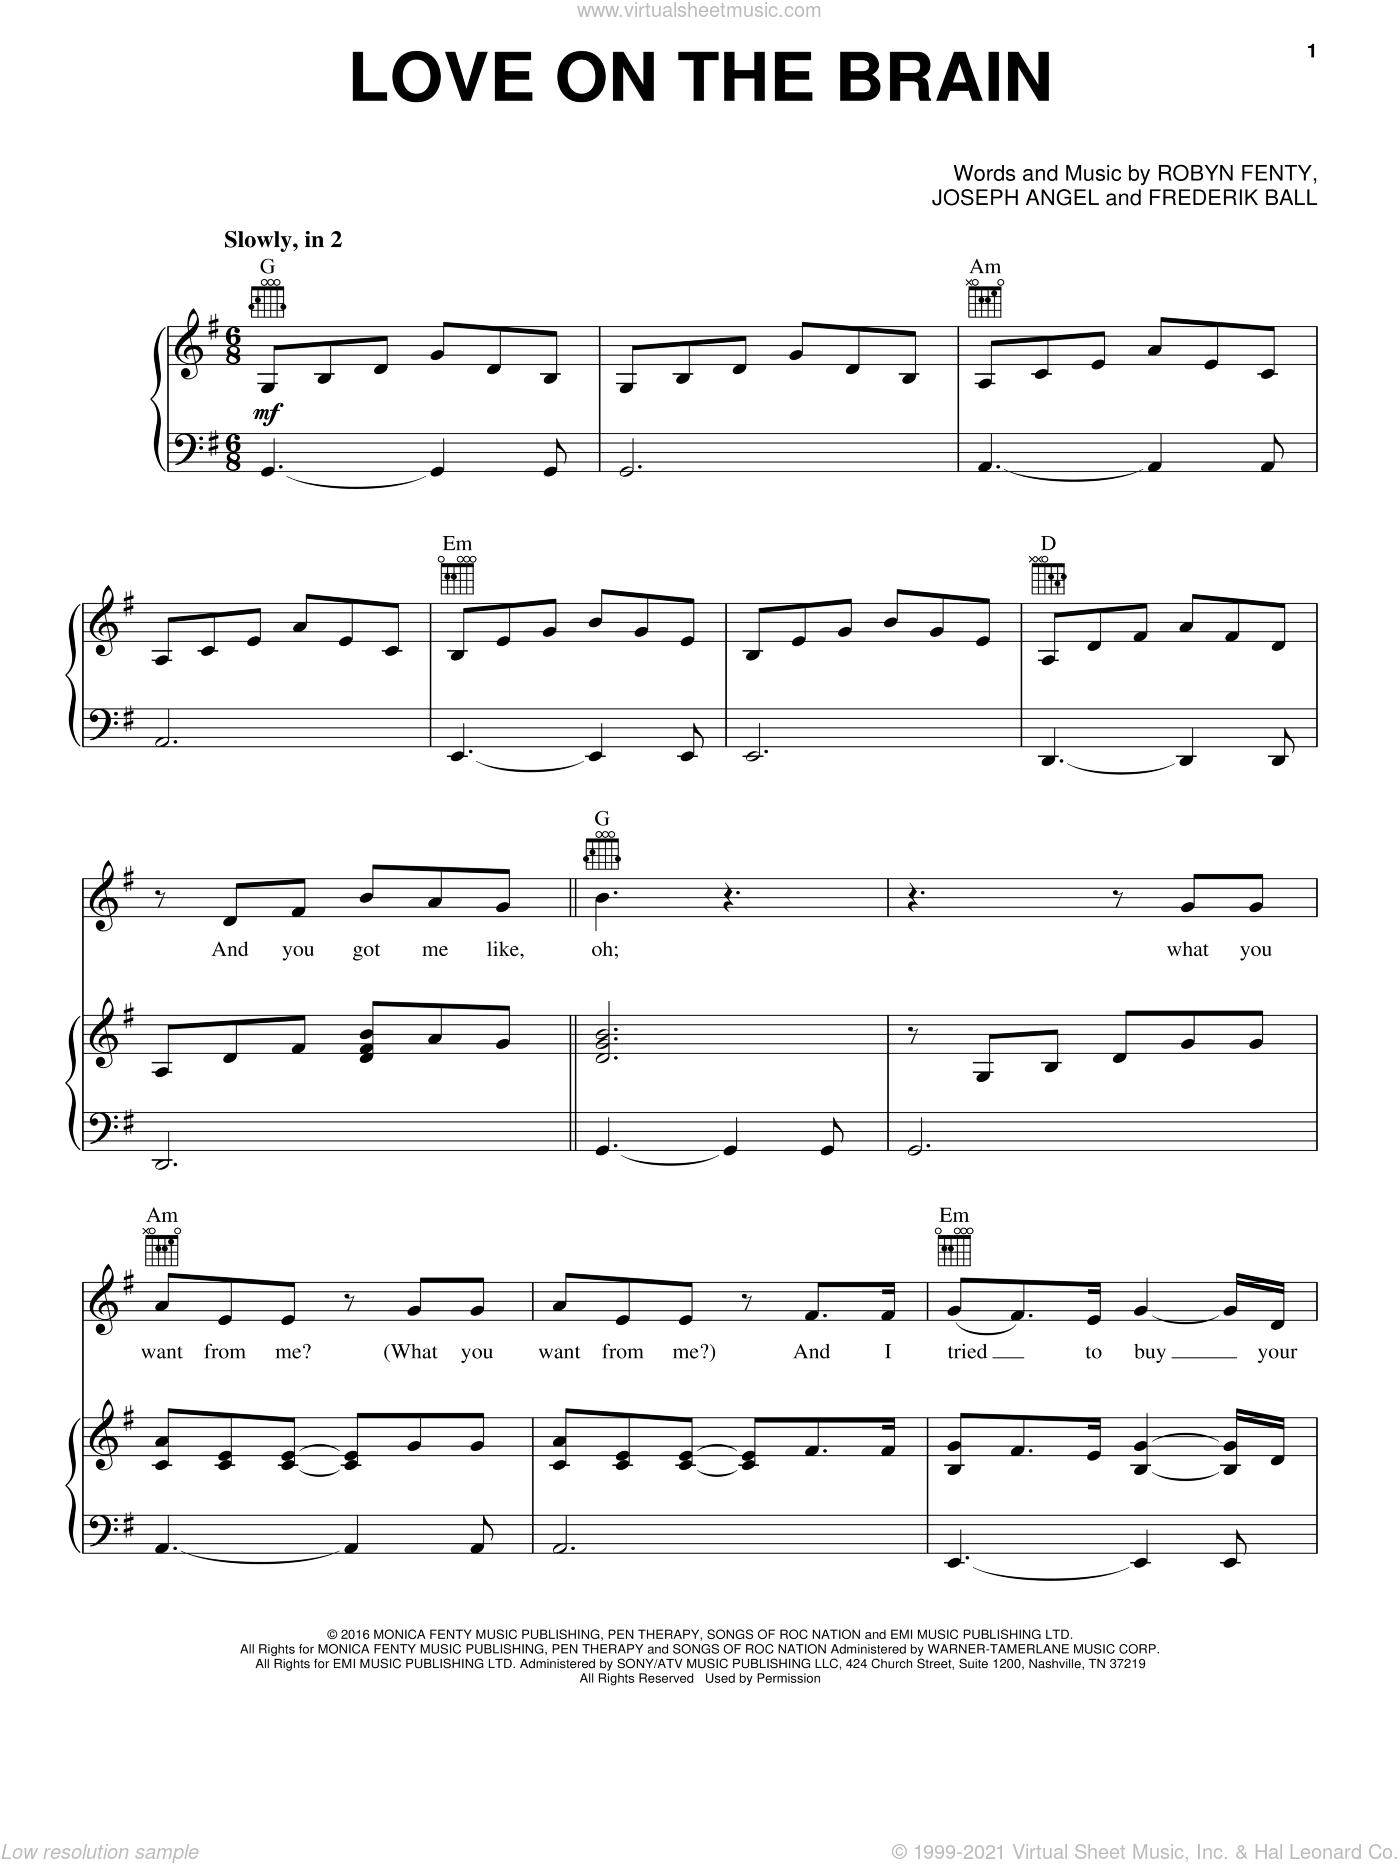 Love On The Brain sheet music for voice, piano or guitar by Rihanna, Frederik Ball, Joseph Angel and Robyn Fenty, intermediate